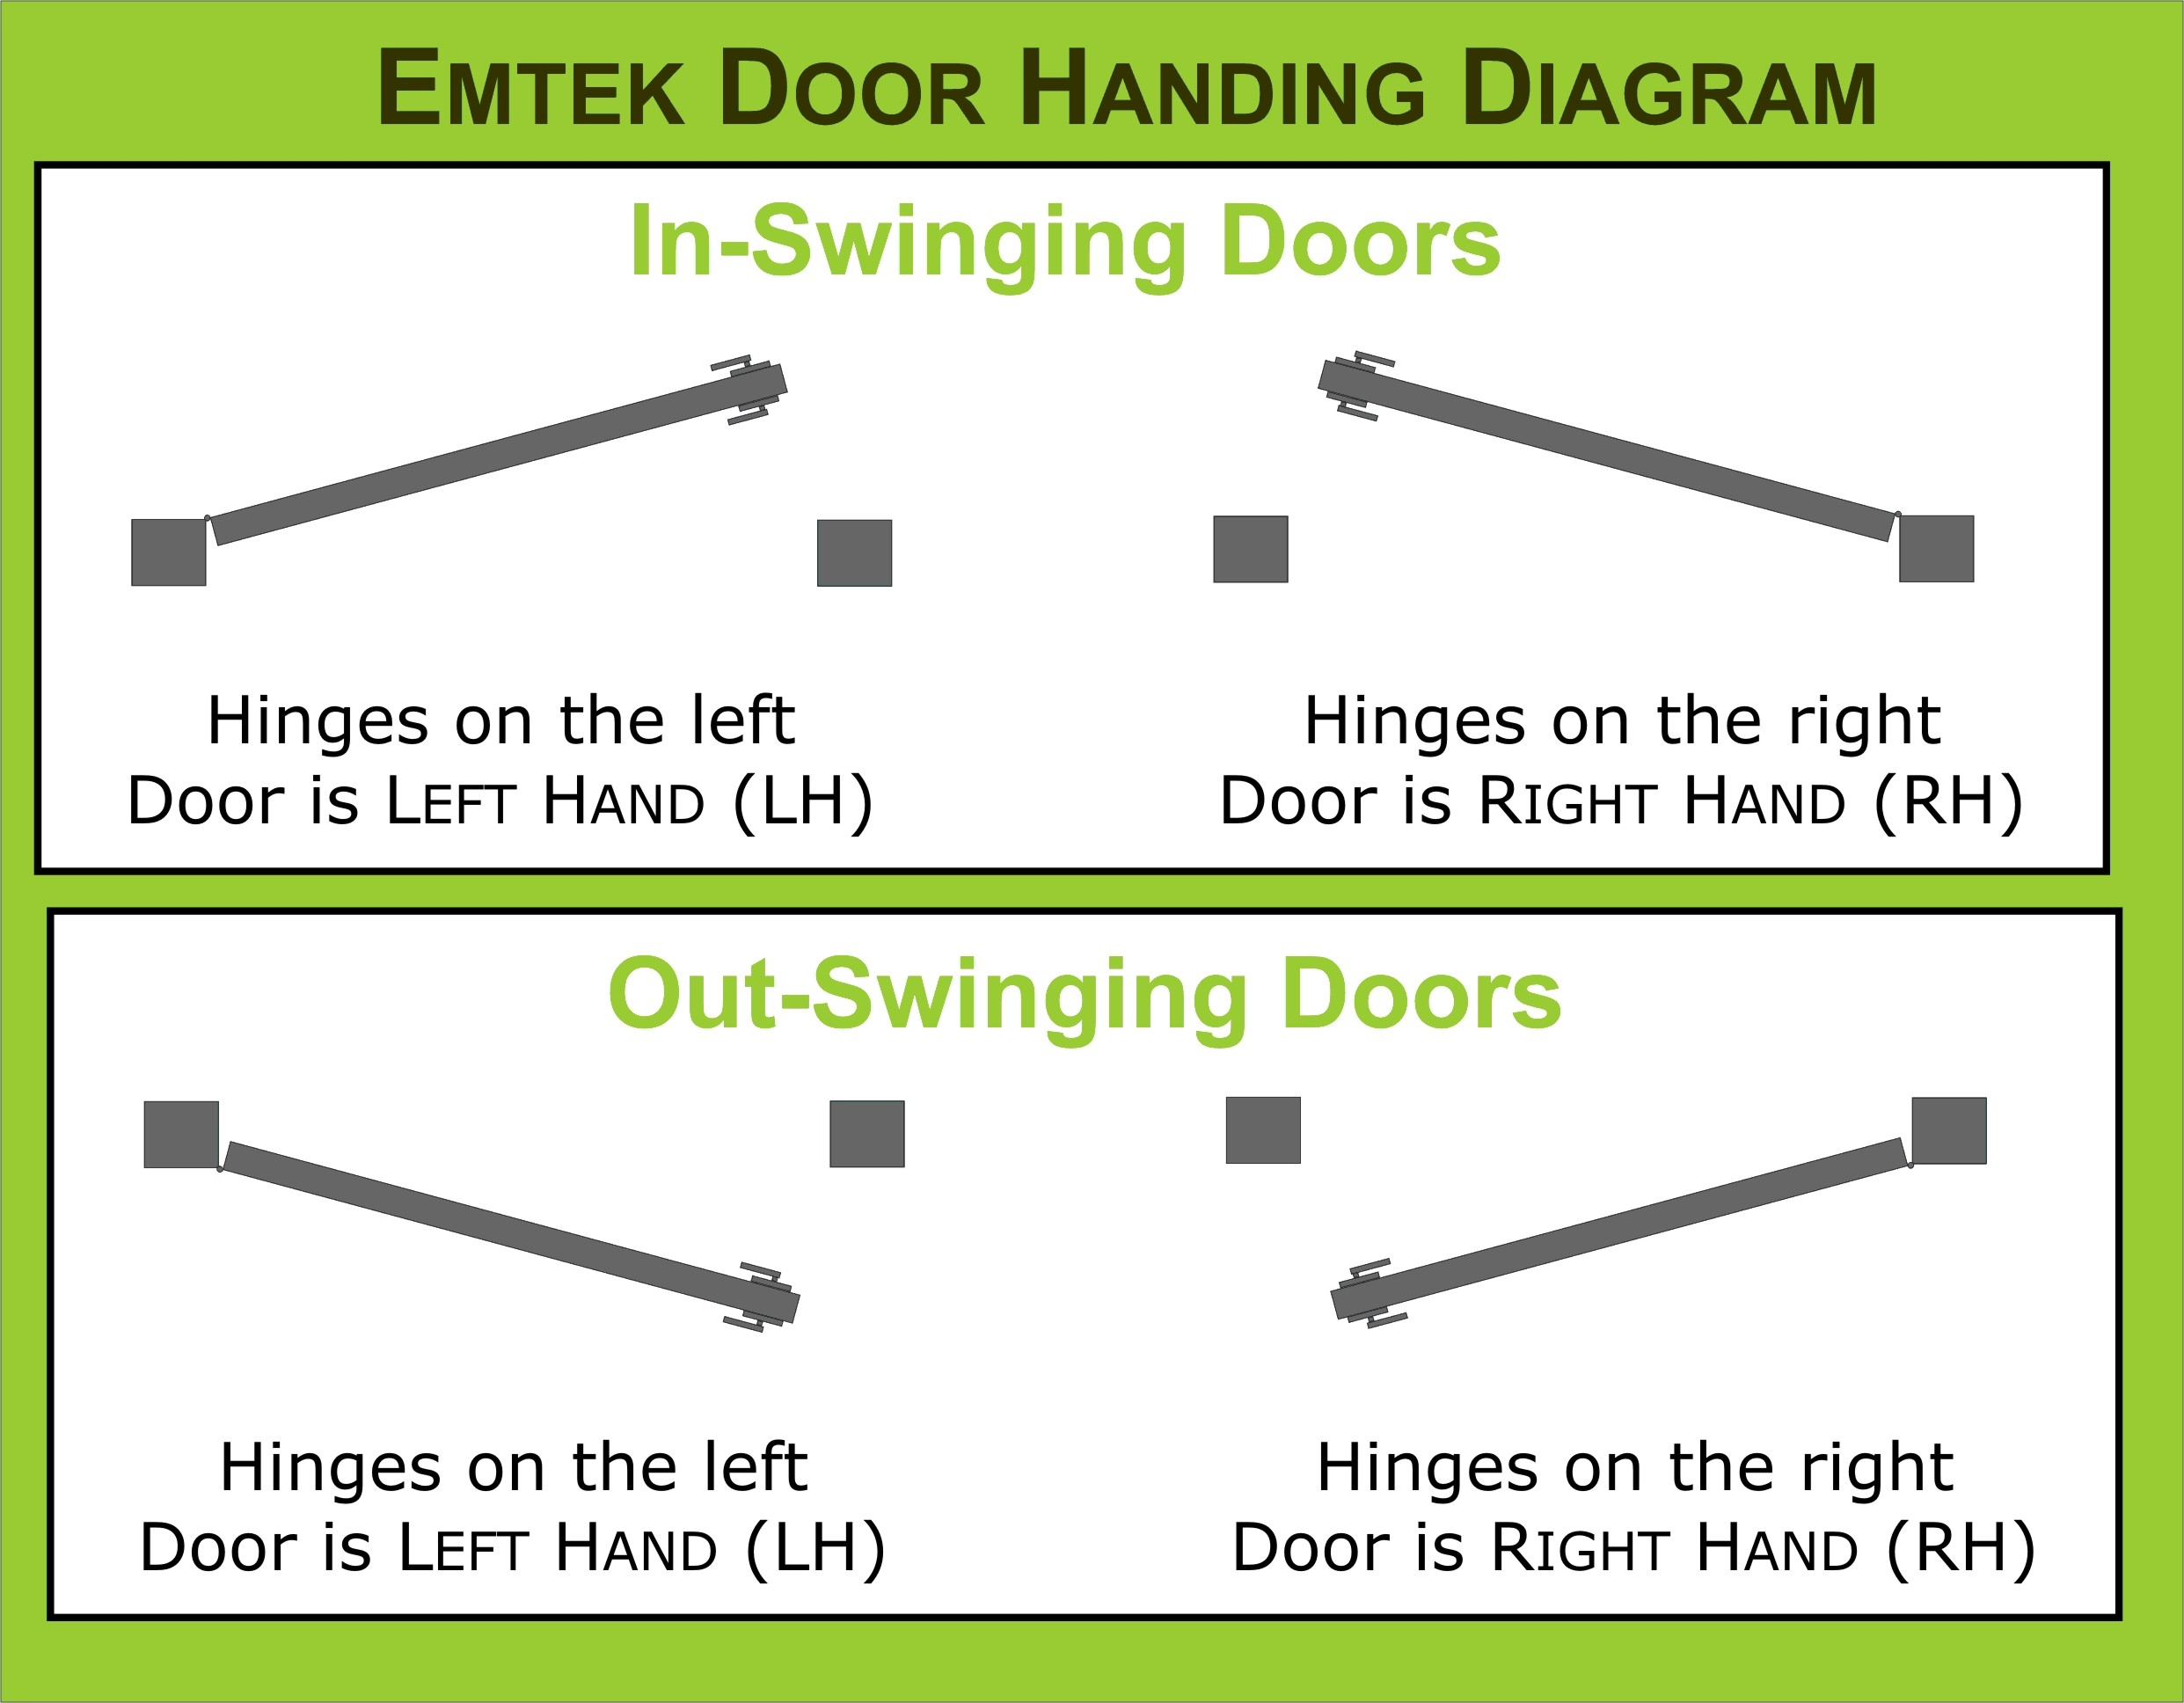 emtek-door-hardware-diagram.jpg